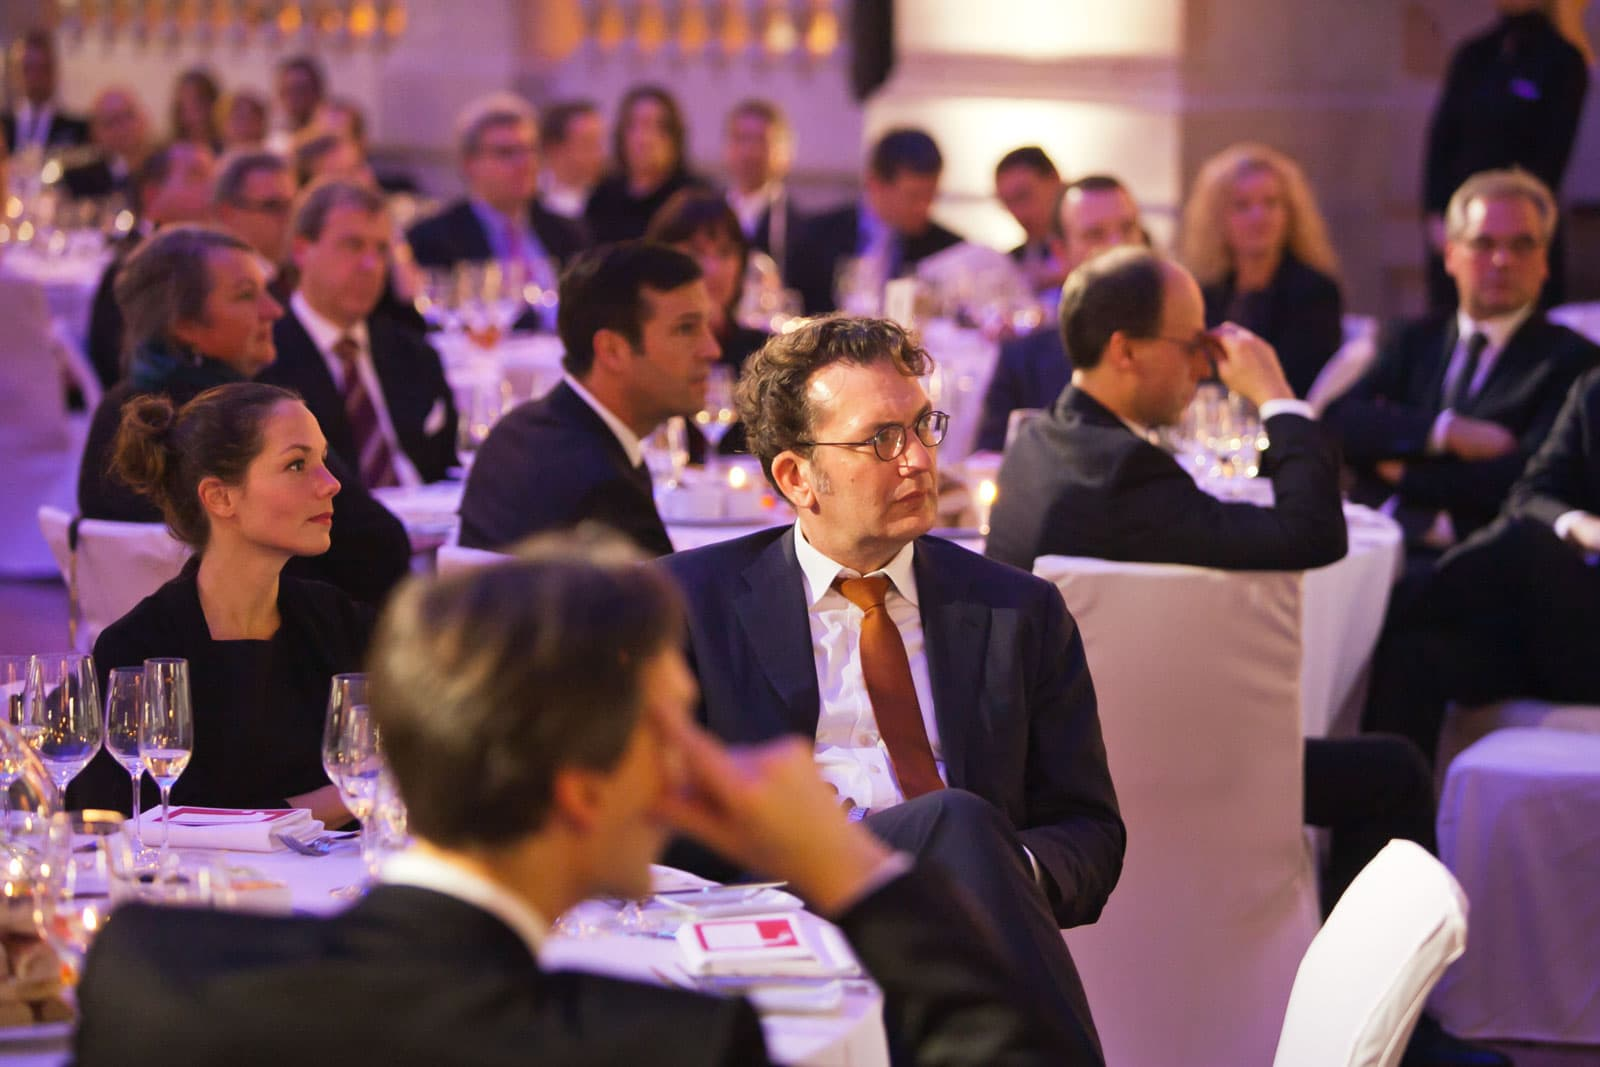 eventfotograf-berlin-econ-award-20.jpg